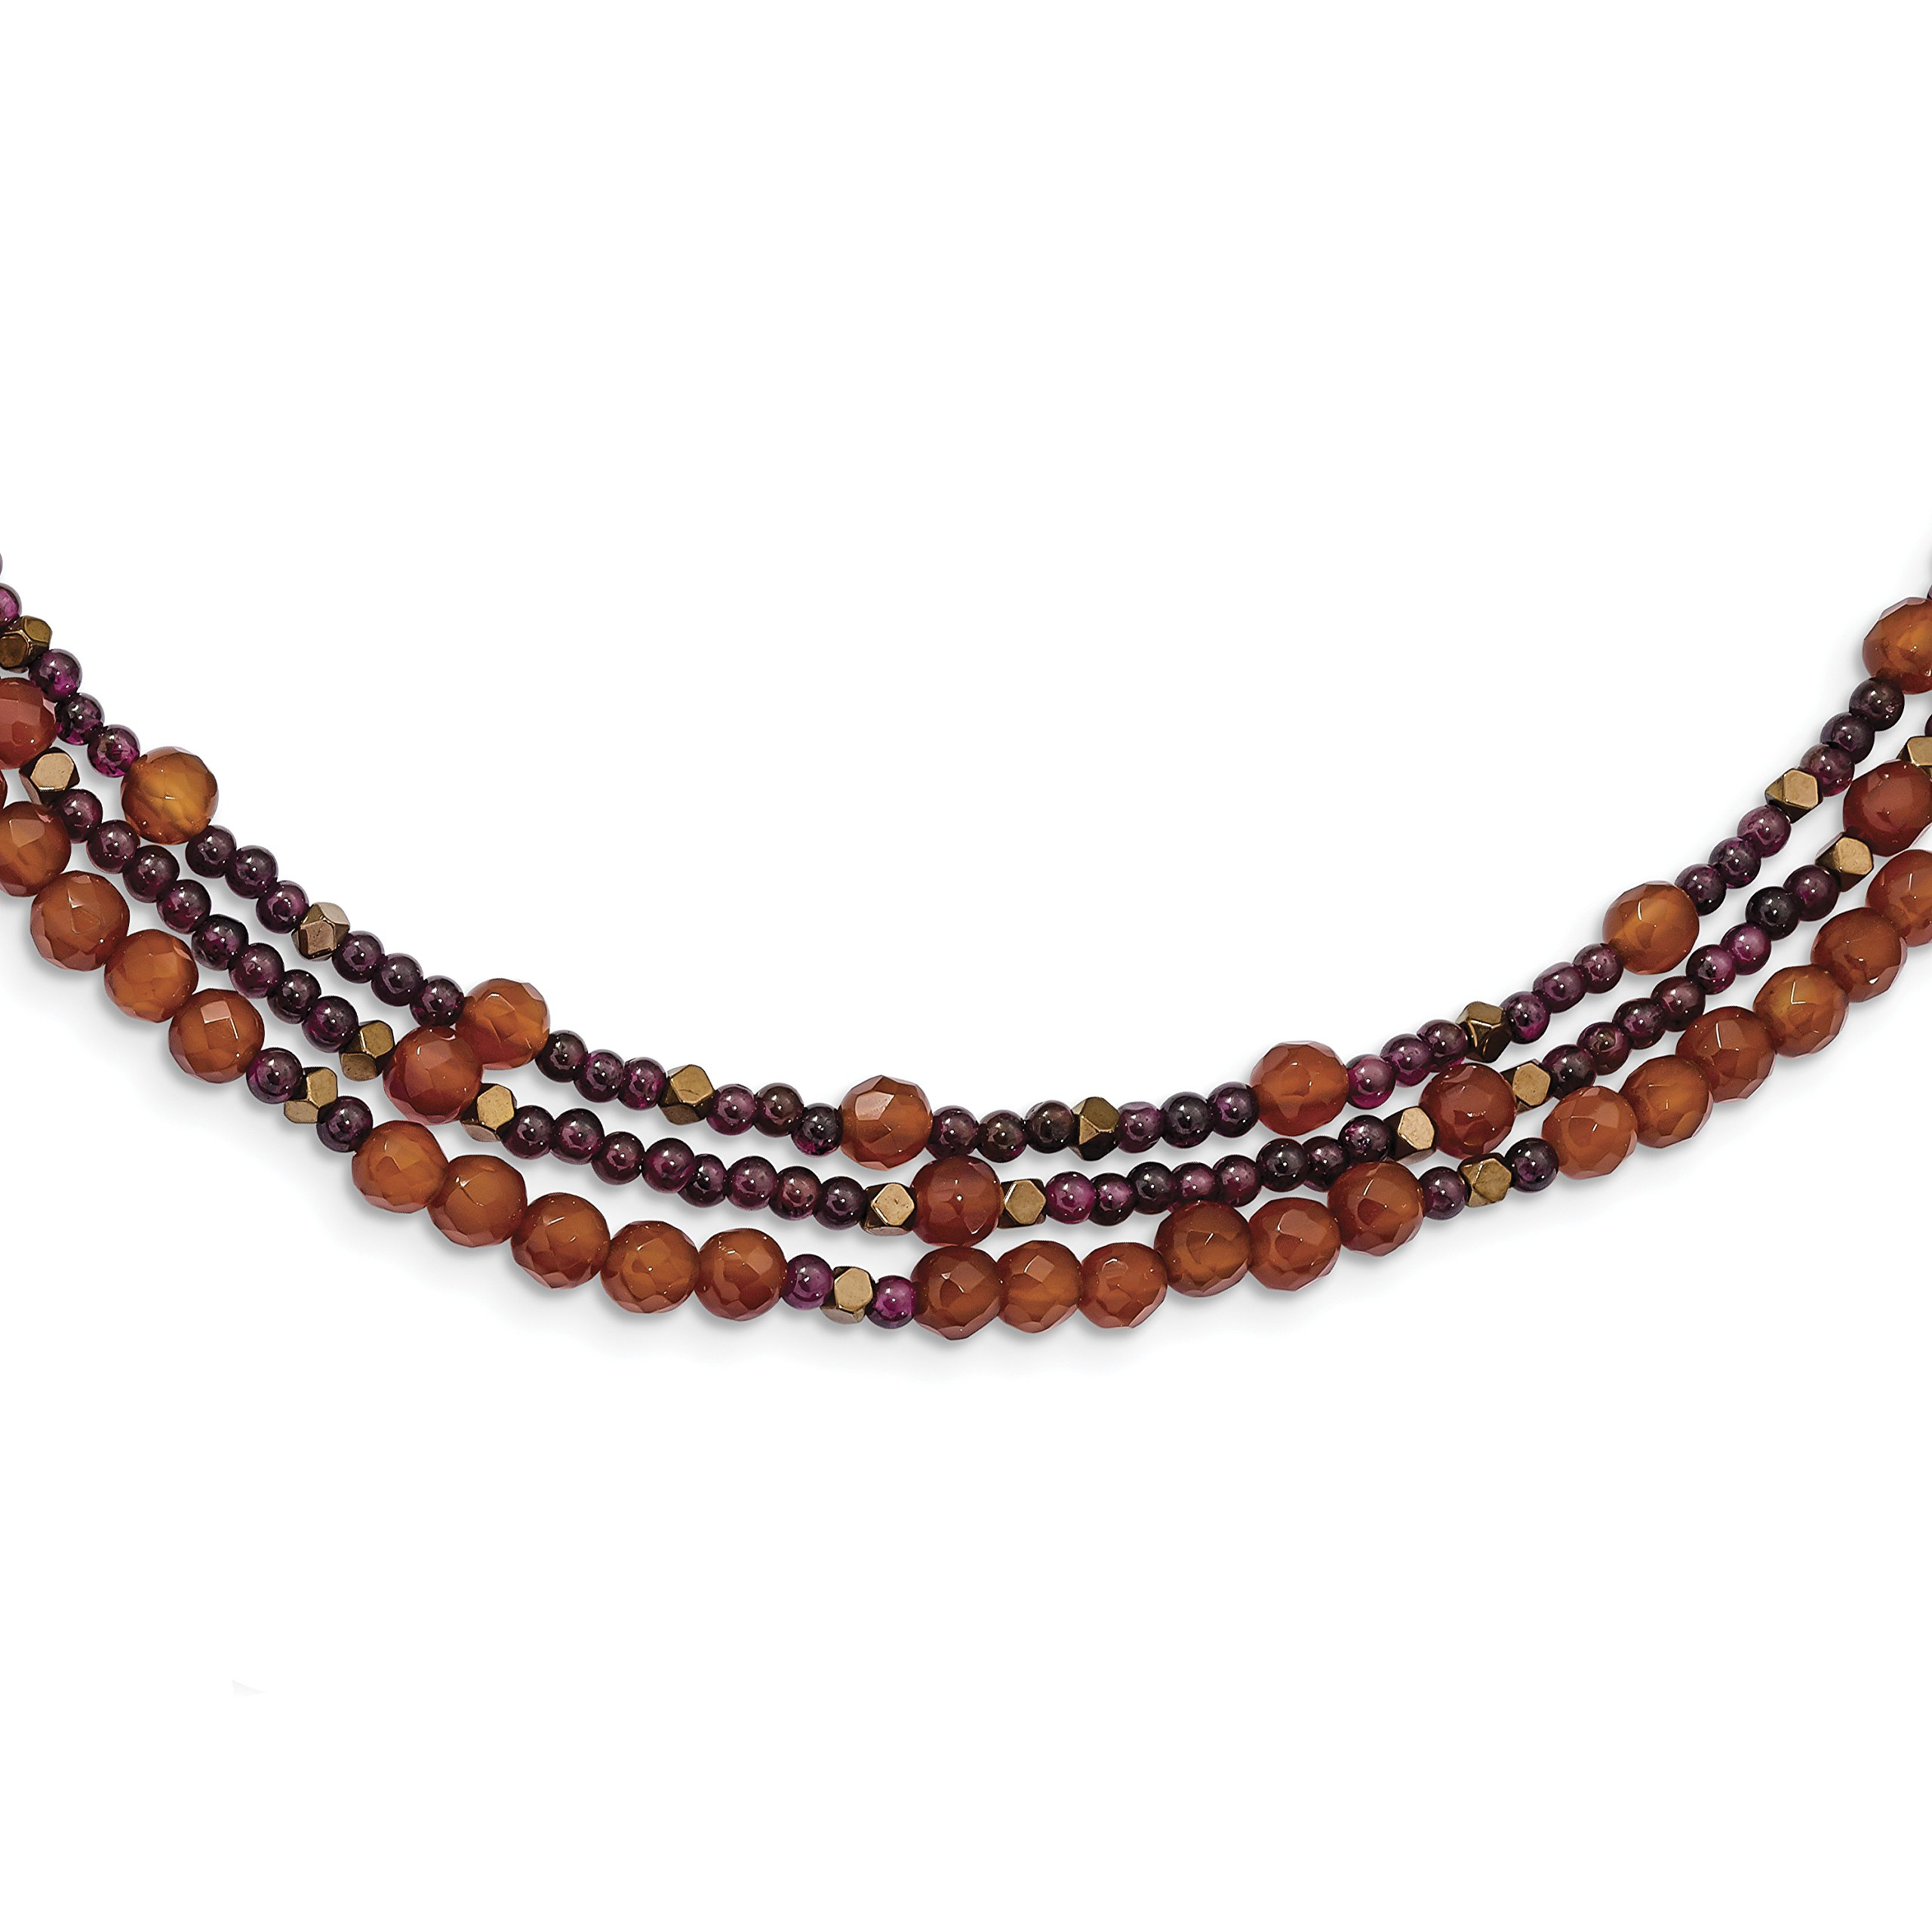 ICE CARATS 925 Sterling Silver Gold Plated Carnelian/garnet/hematite 3 Strand 2 Inch Extension Chain Necklace Natural Stone Fine Jewelry Gift Set For Women Heart